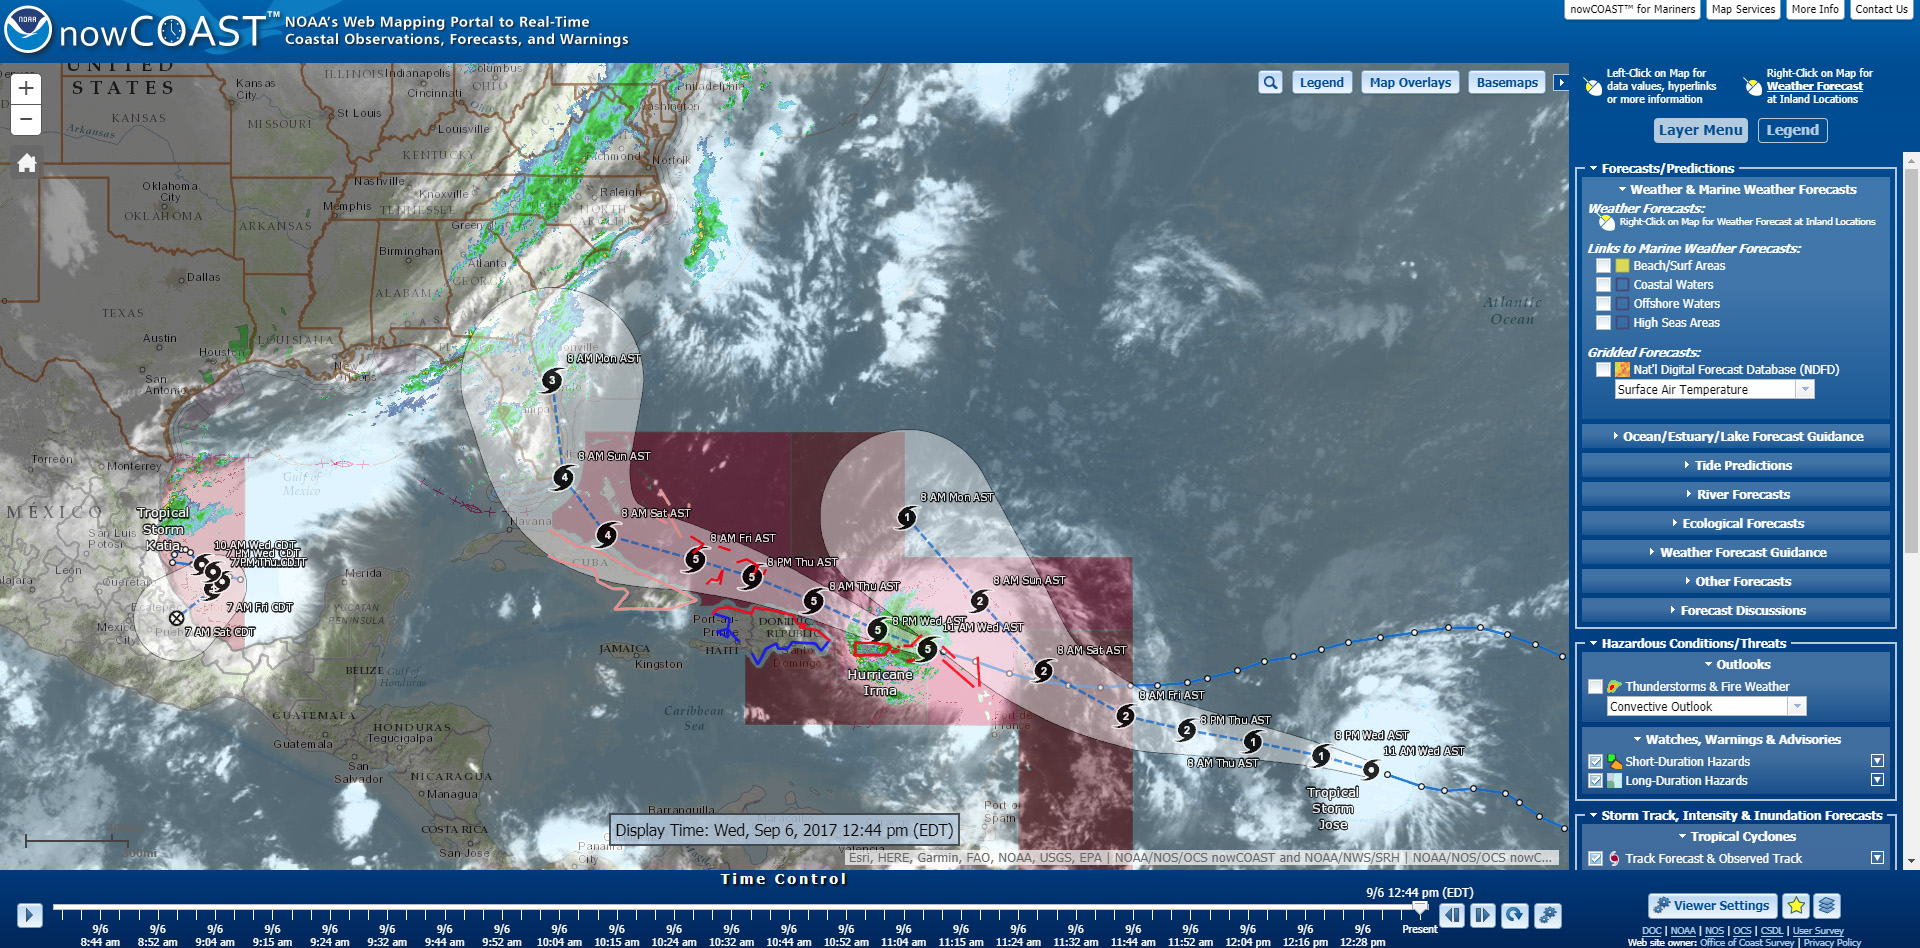 Projected path of Hurricane Irma as seen in nowCOAST™.